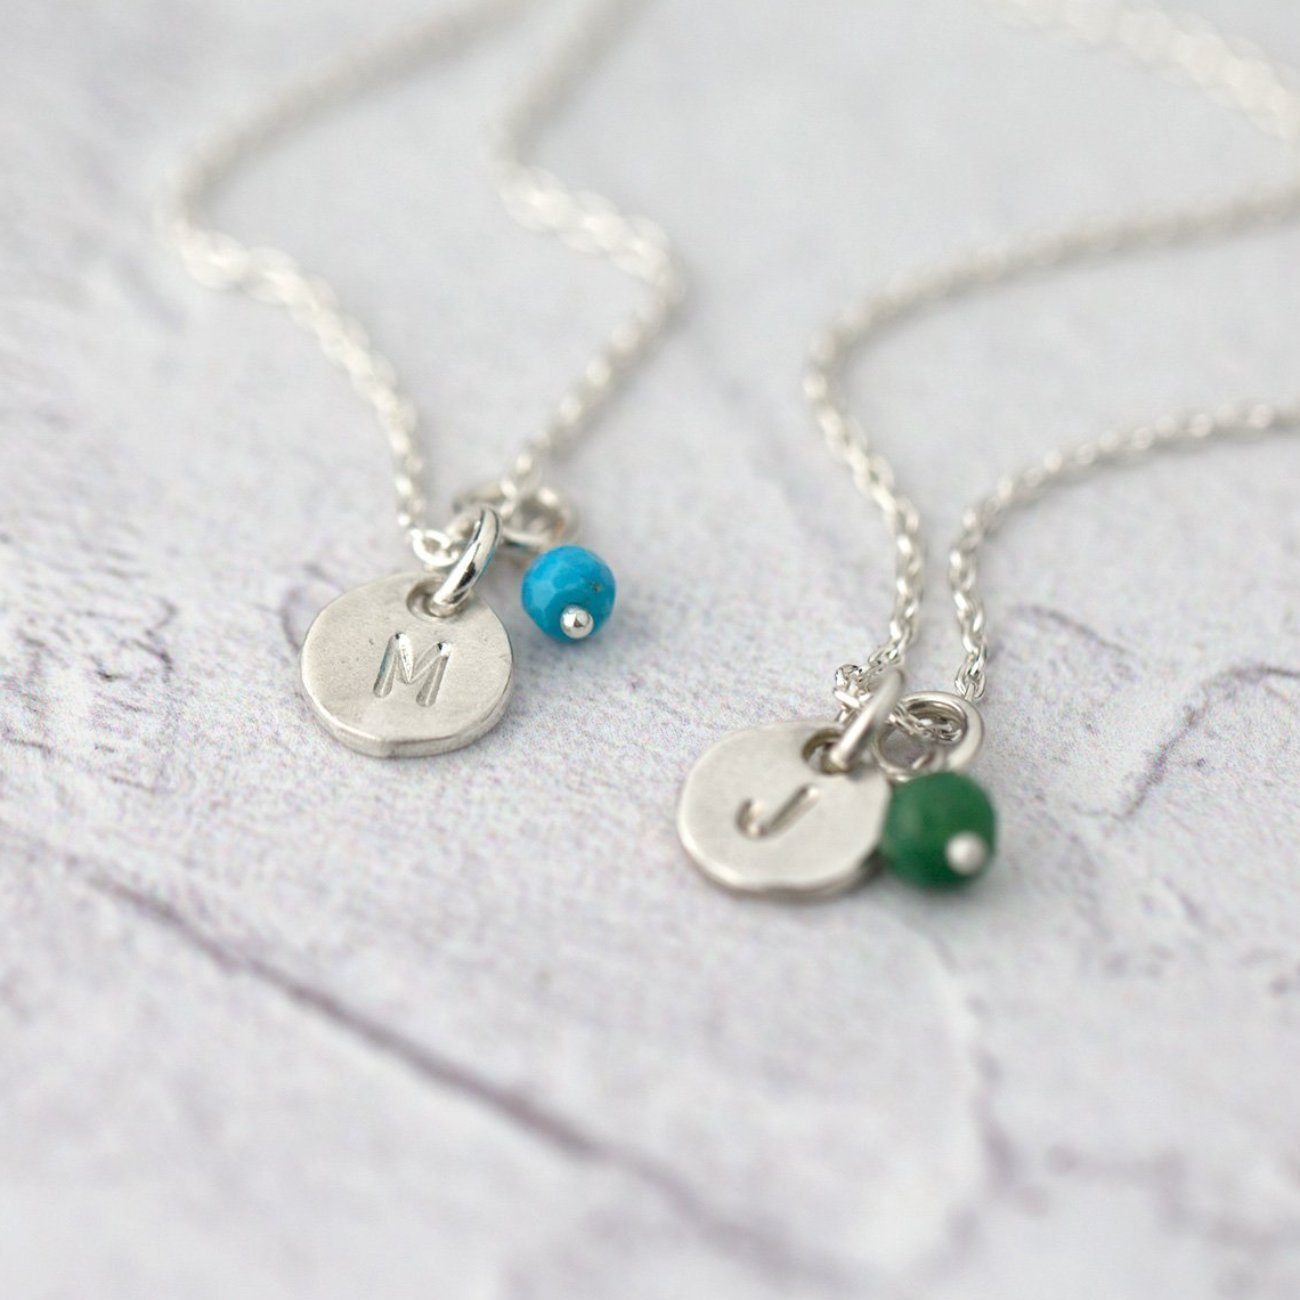 Initial Birthstone Necklace - Handmade Jewelry by Burnish